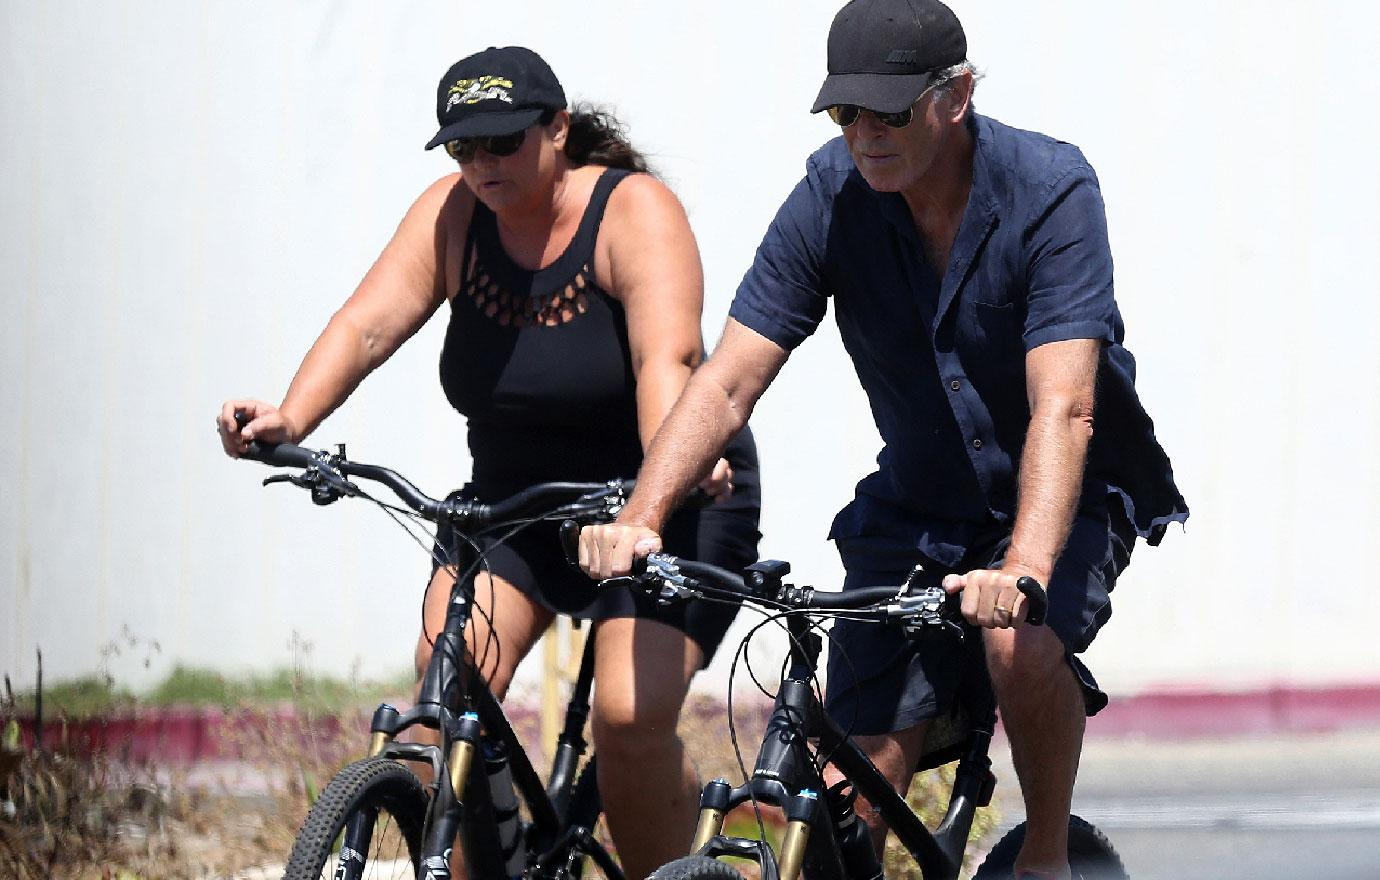 Pierce Brosnan And Wife Keely Take Ocean Bike Ride